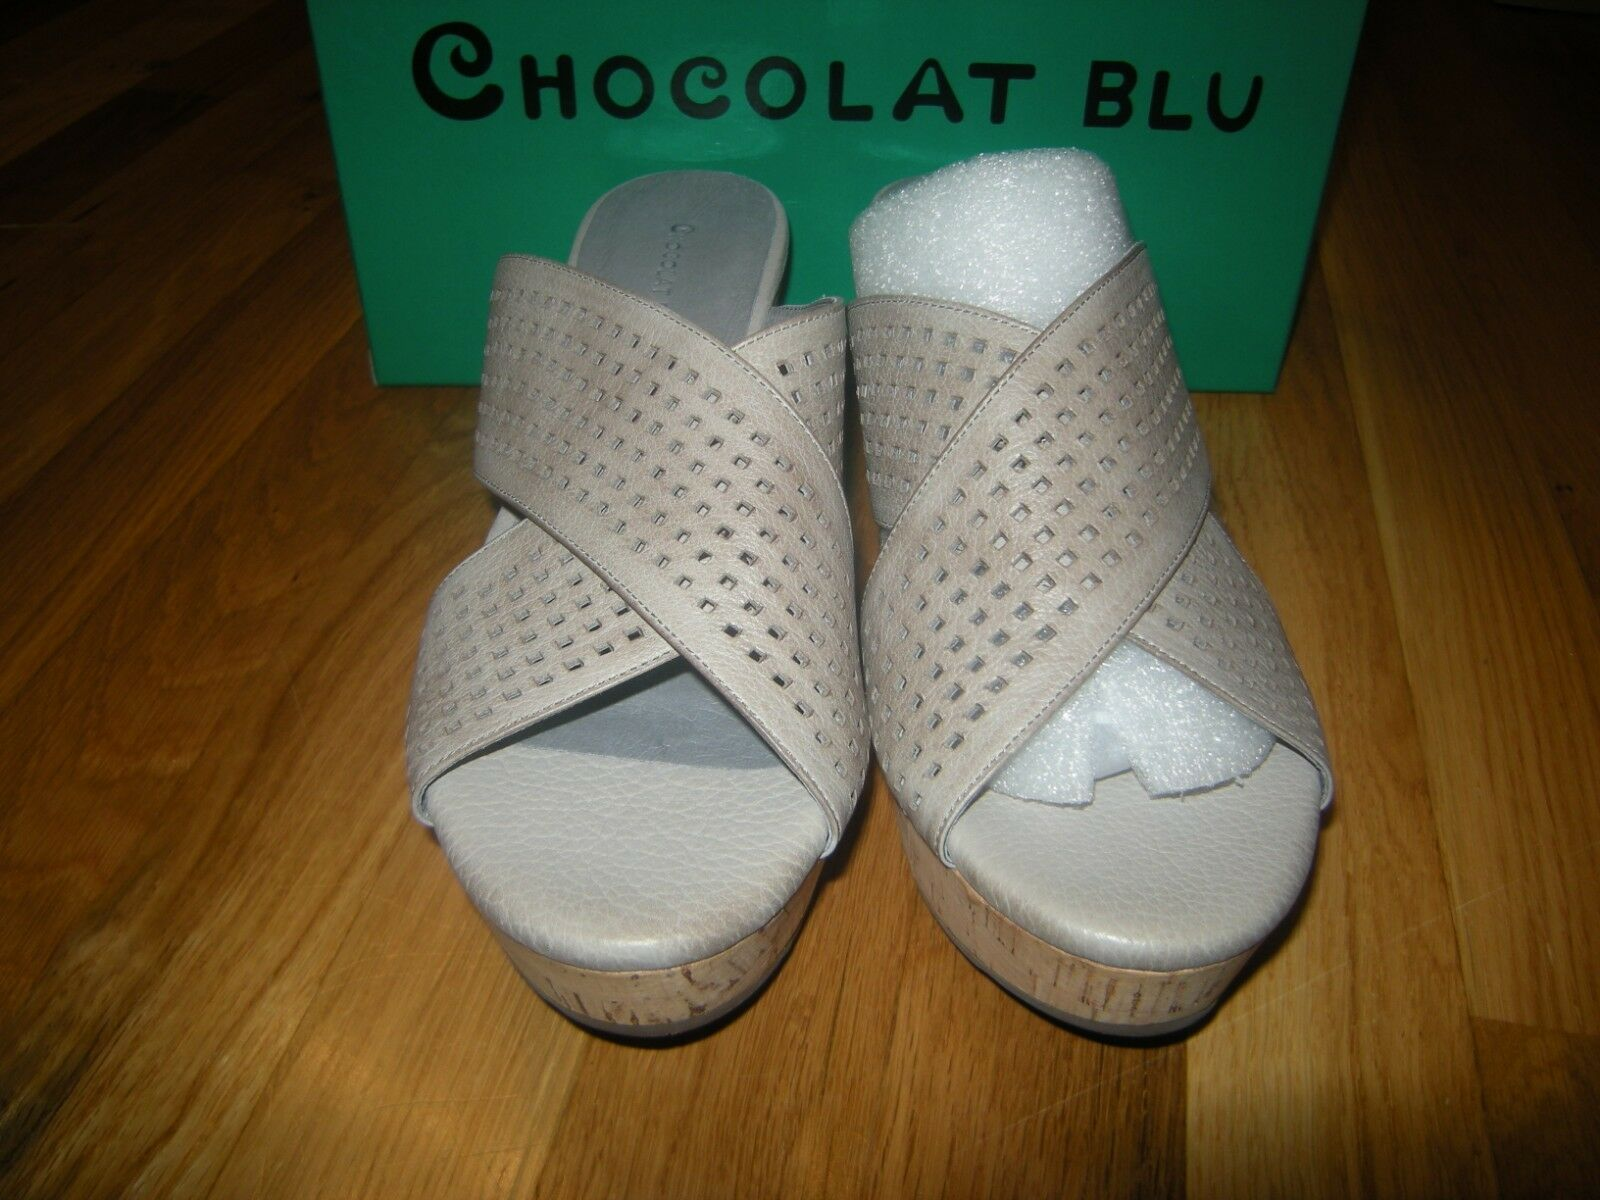 Brand New Chocolat blue Wamblee Grey Wedge, Size 8.5